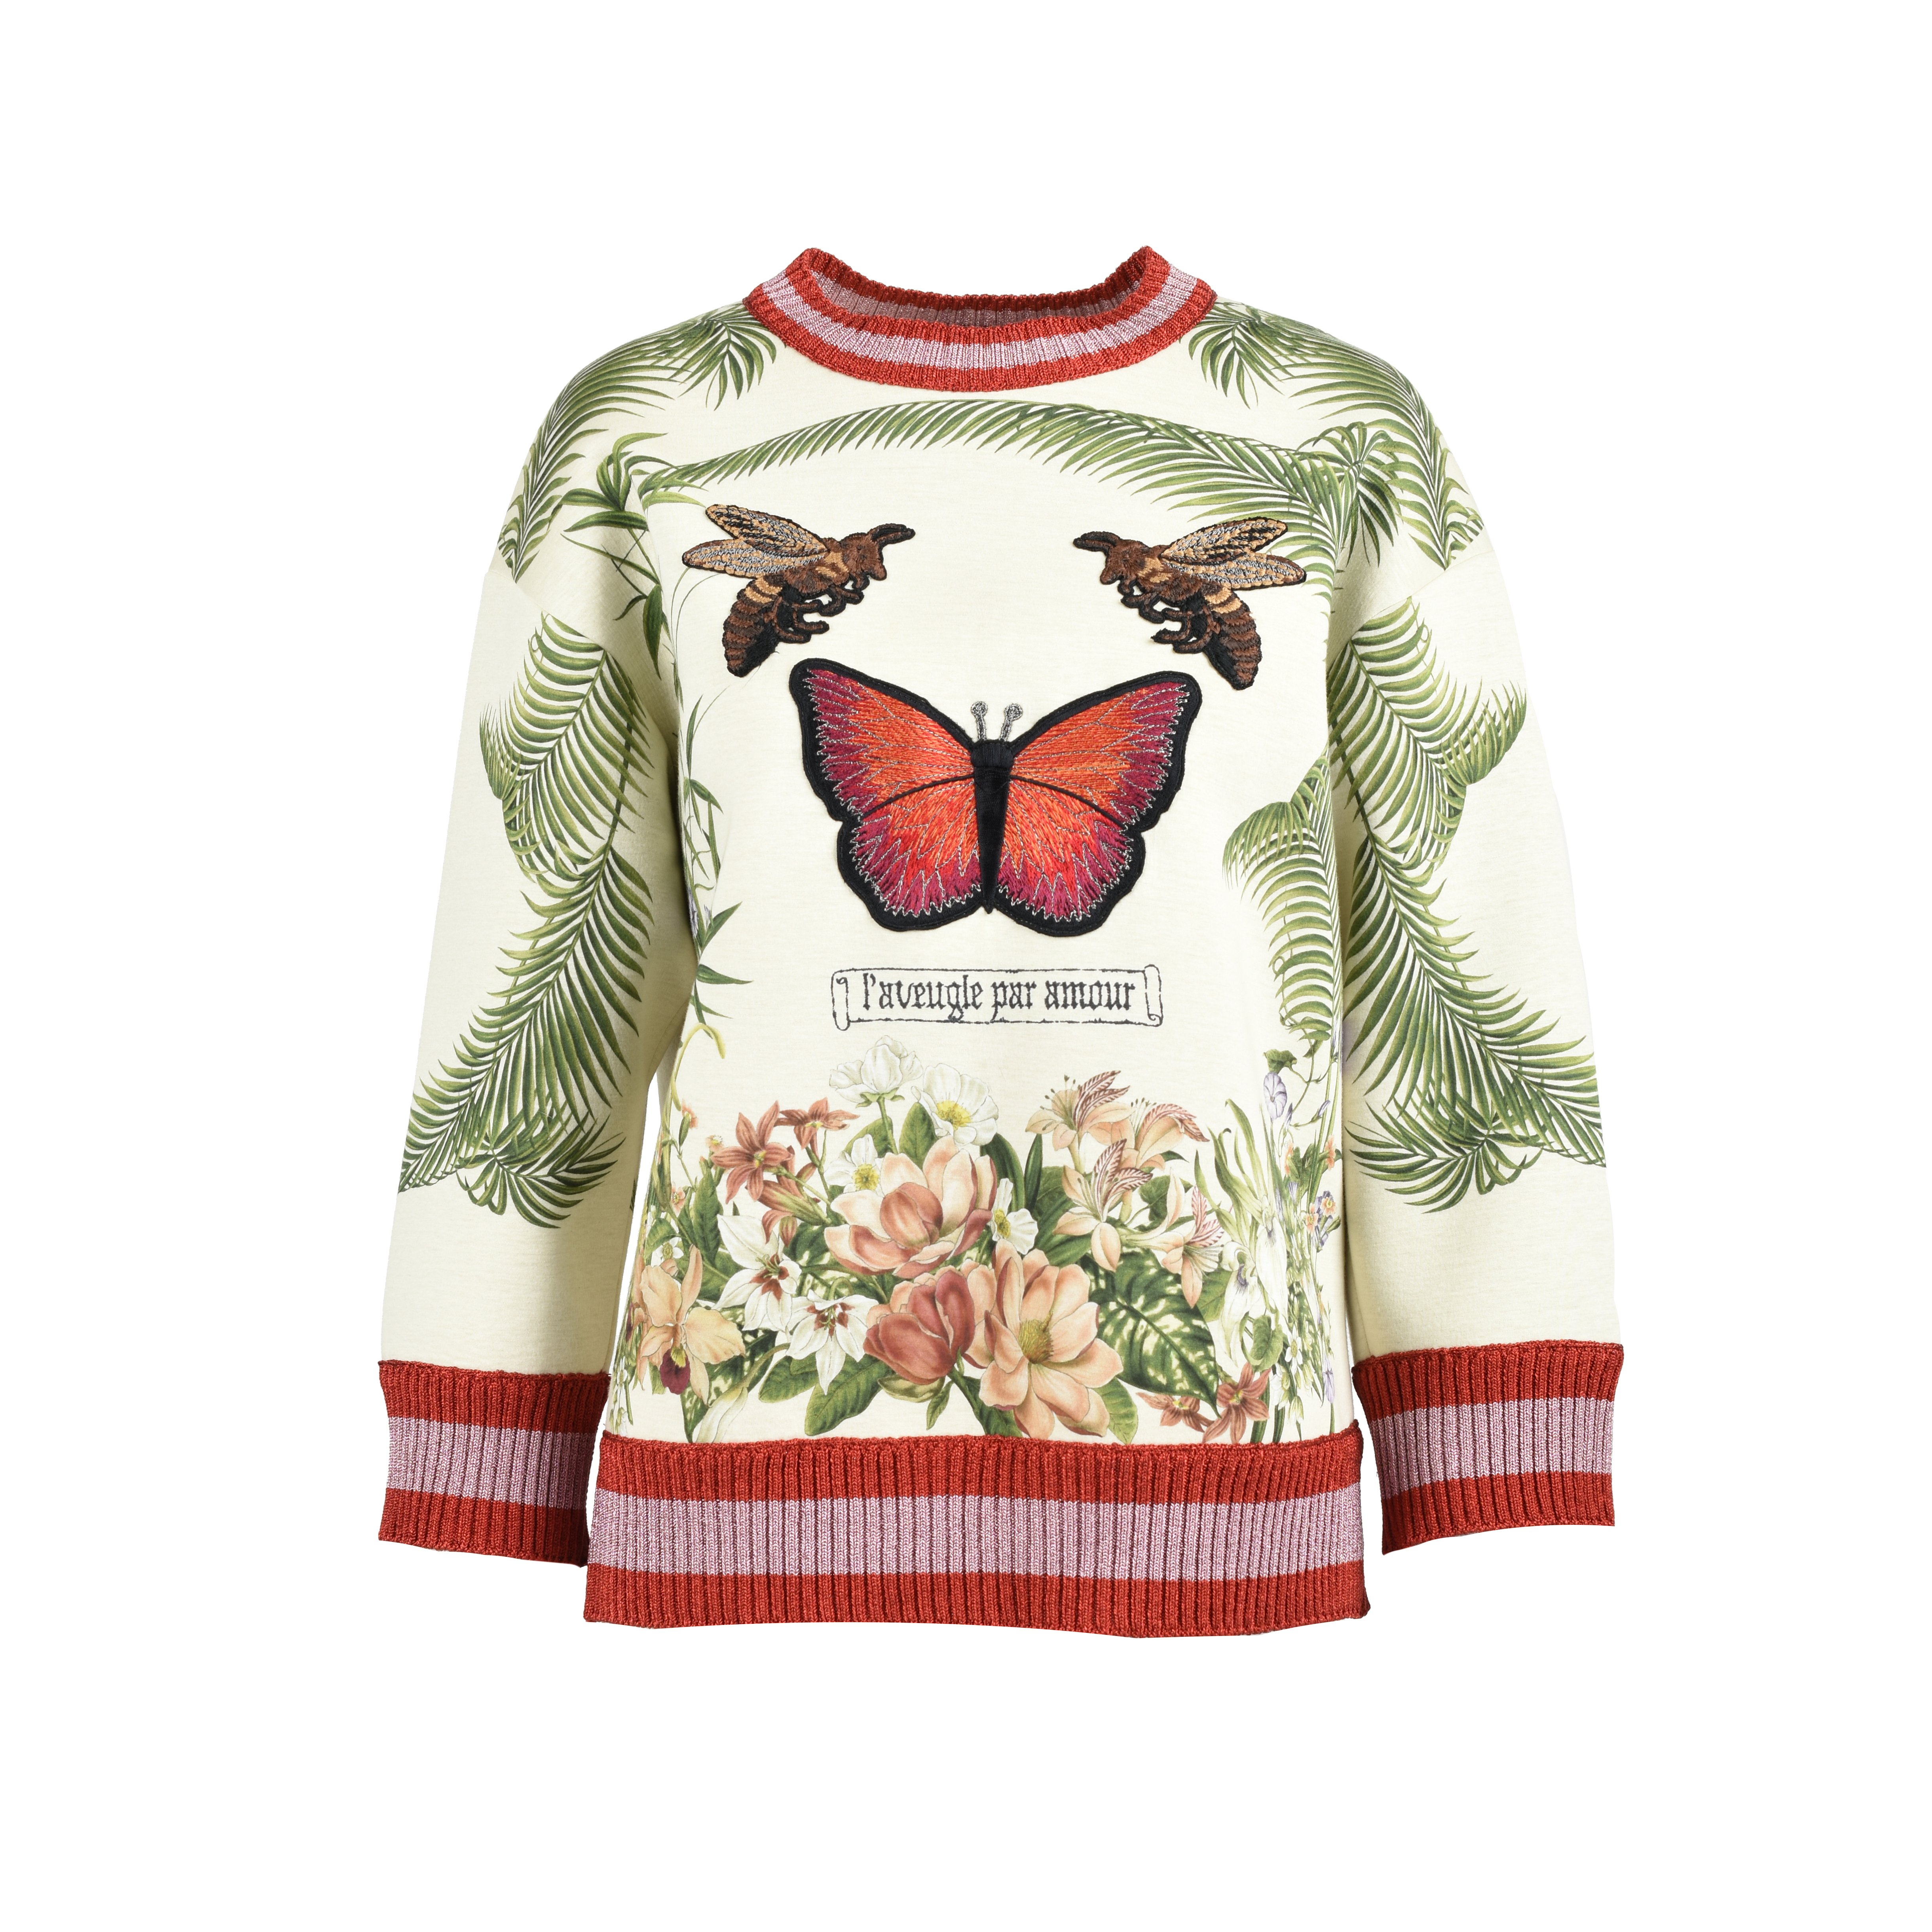 c19ce01463f Authentic Second Hand Gucci Butterfly and Bee Appliqué Sweatshirt  (PSS-051-00348)